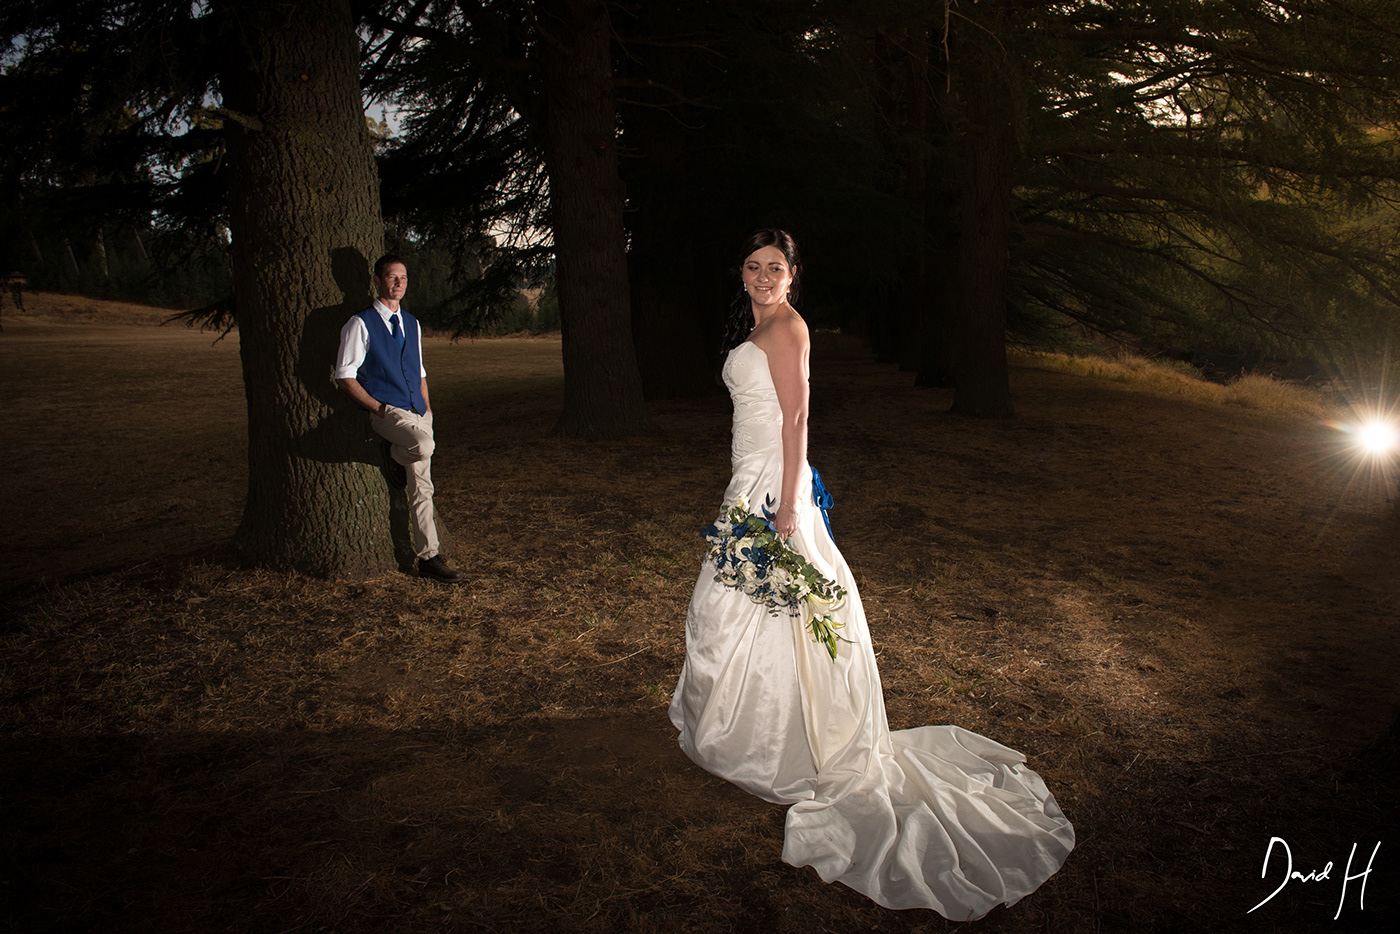 Image may contain: wedding dress, tree and outdoor